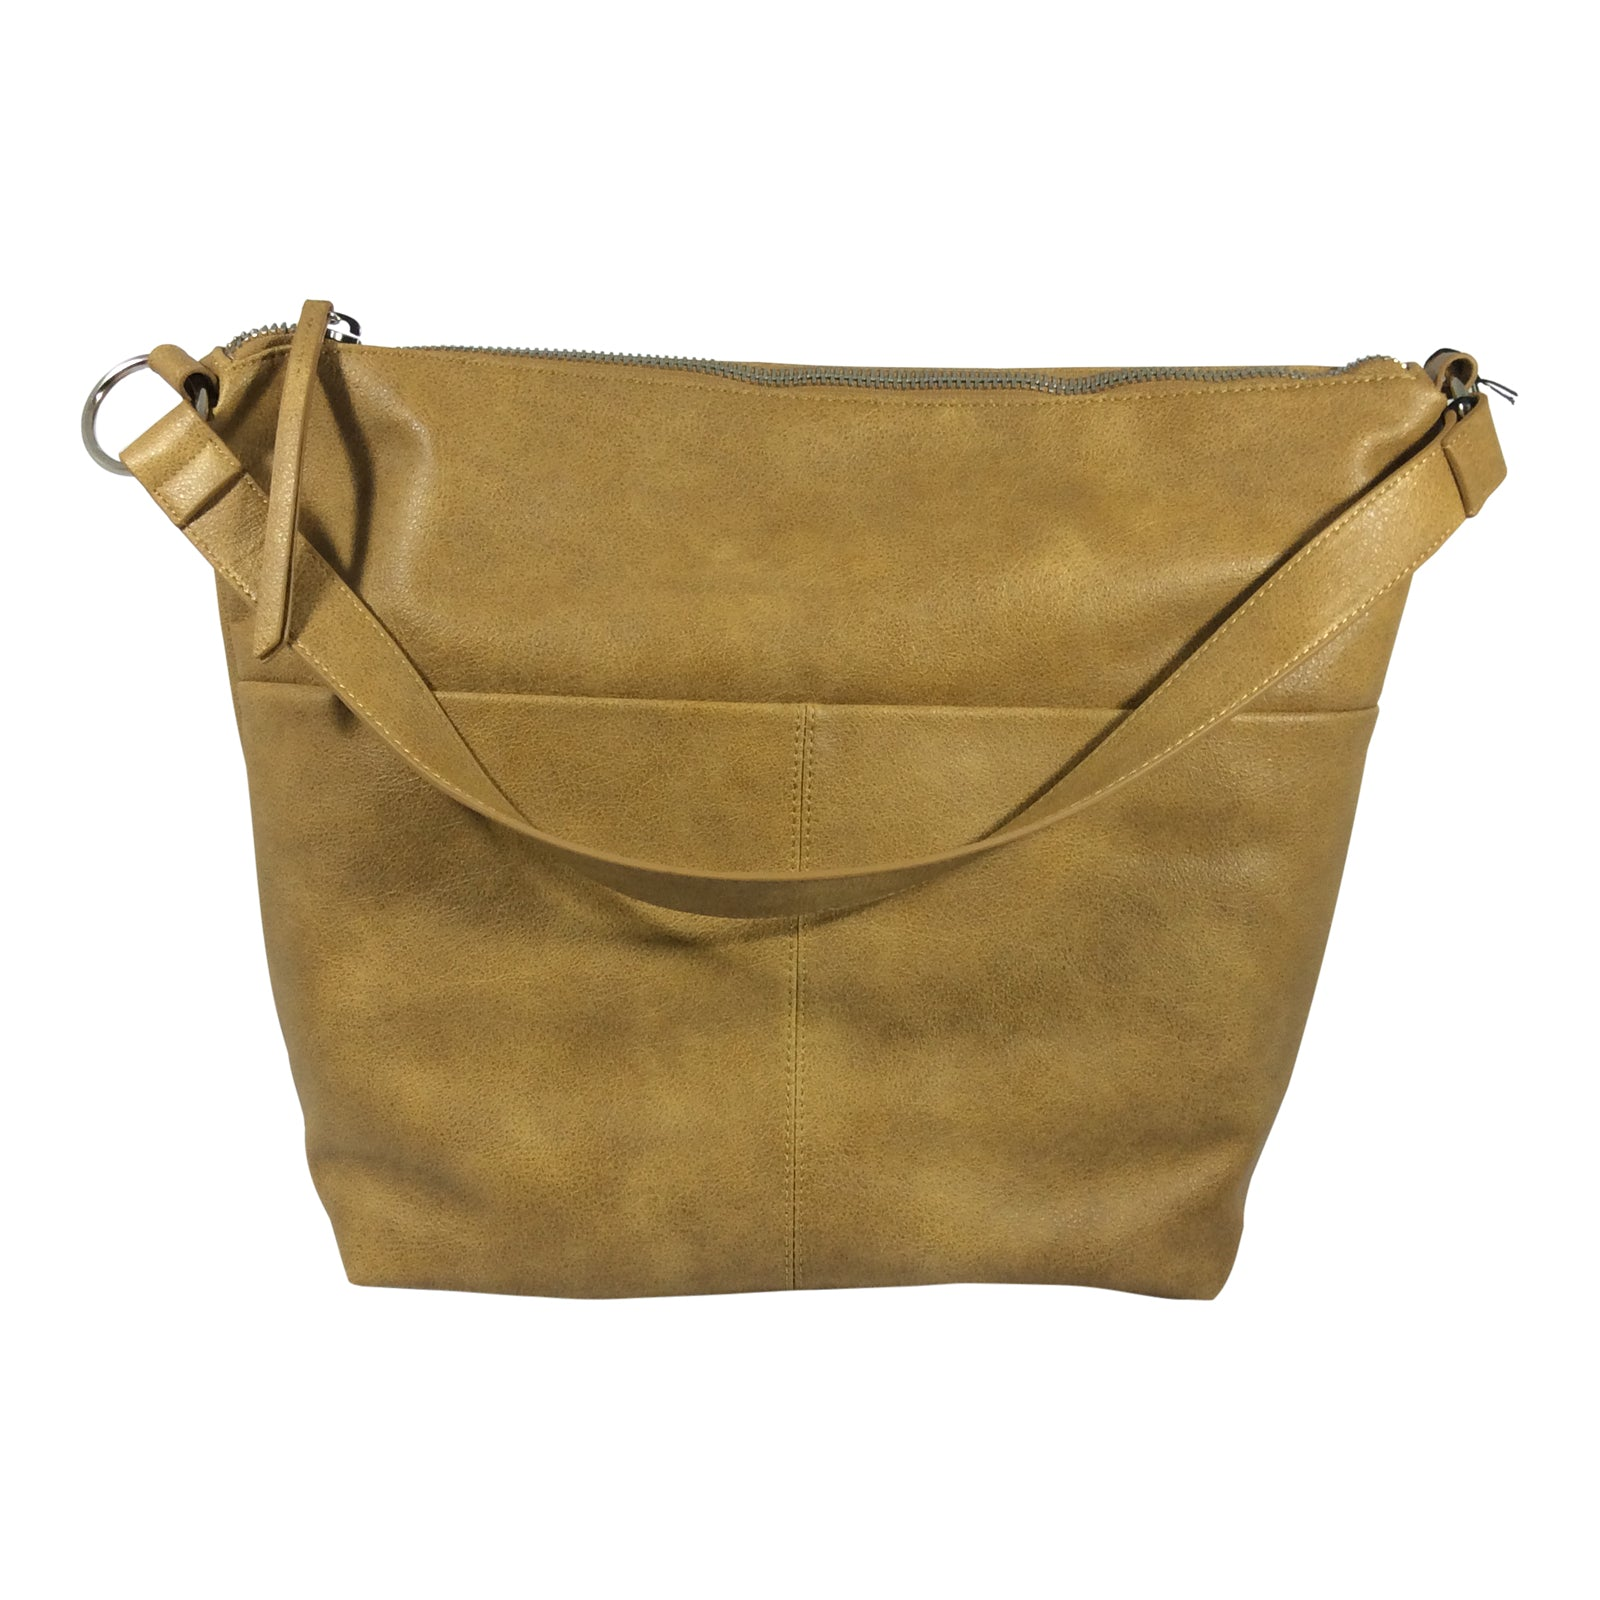 Cosgrove and Beasley Large Tote - Justice - Tan - Sole Sister Shoes